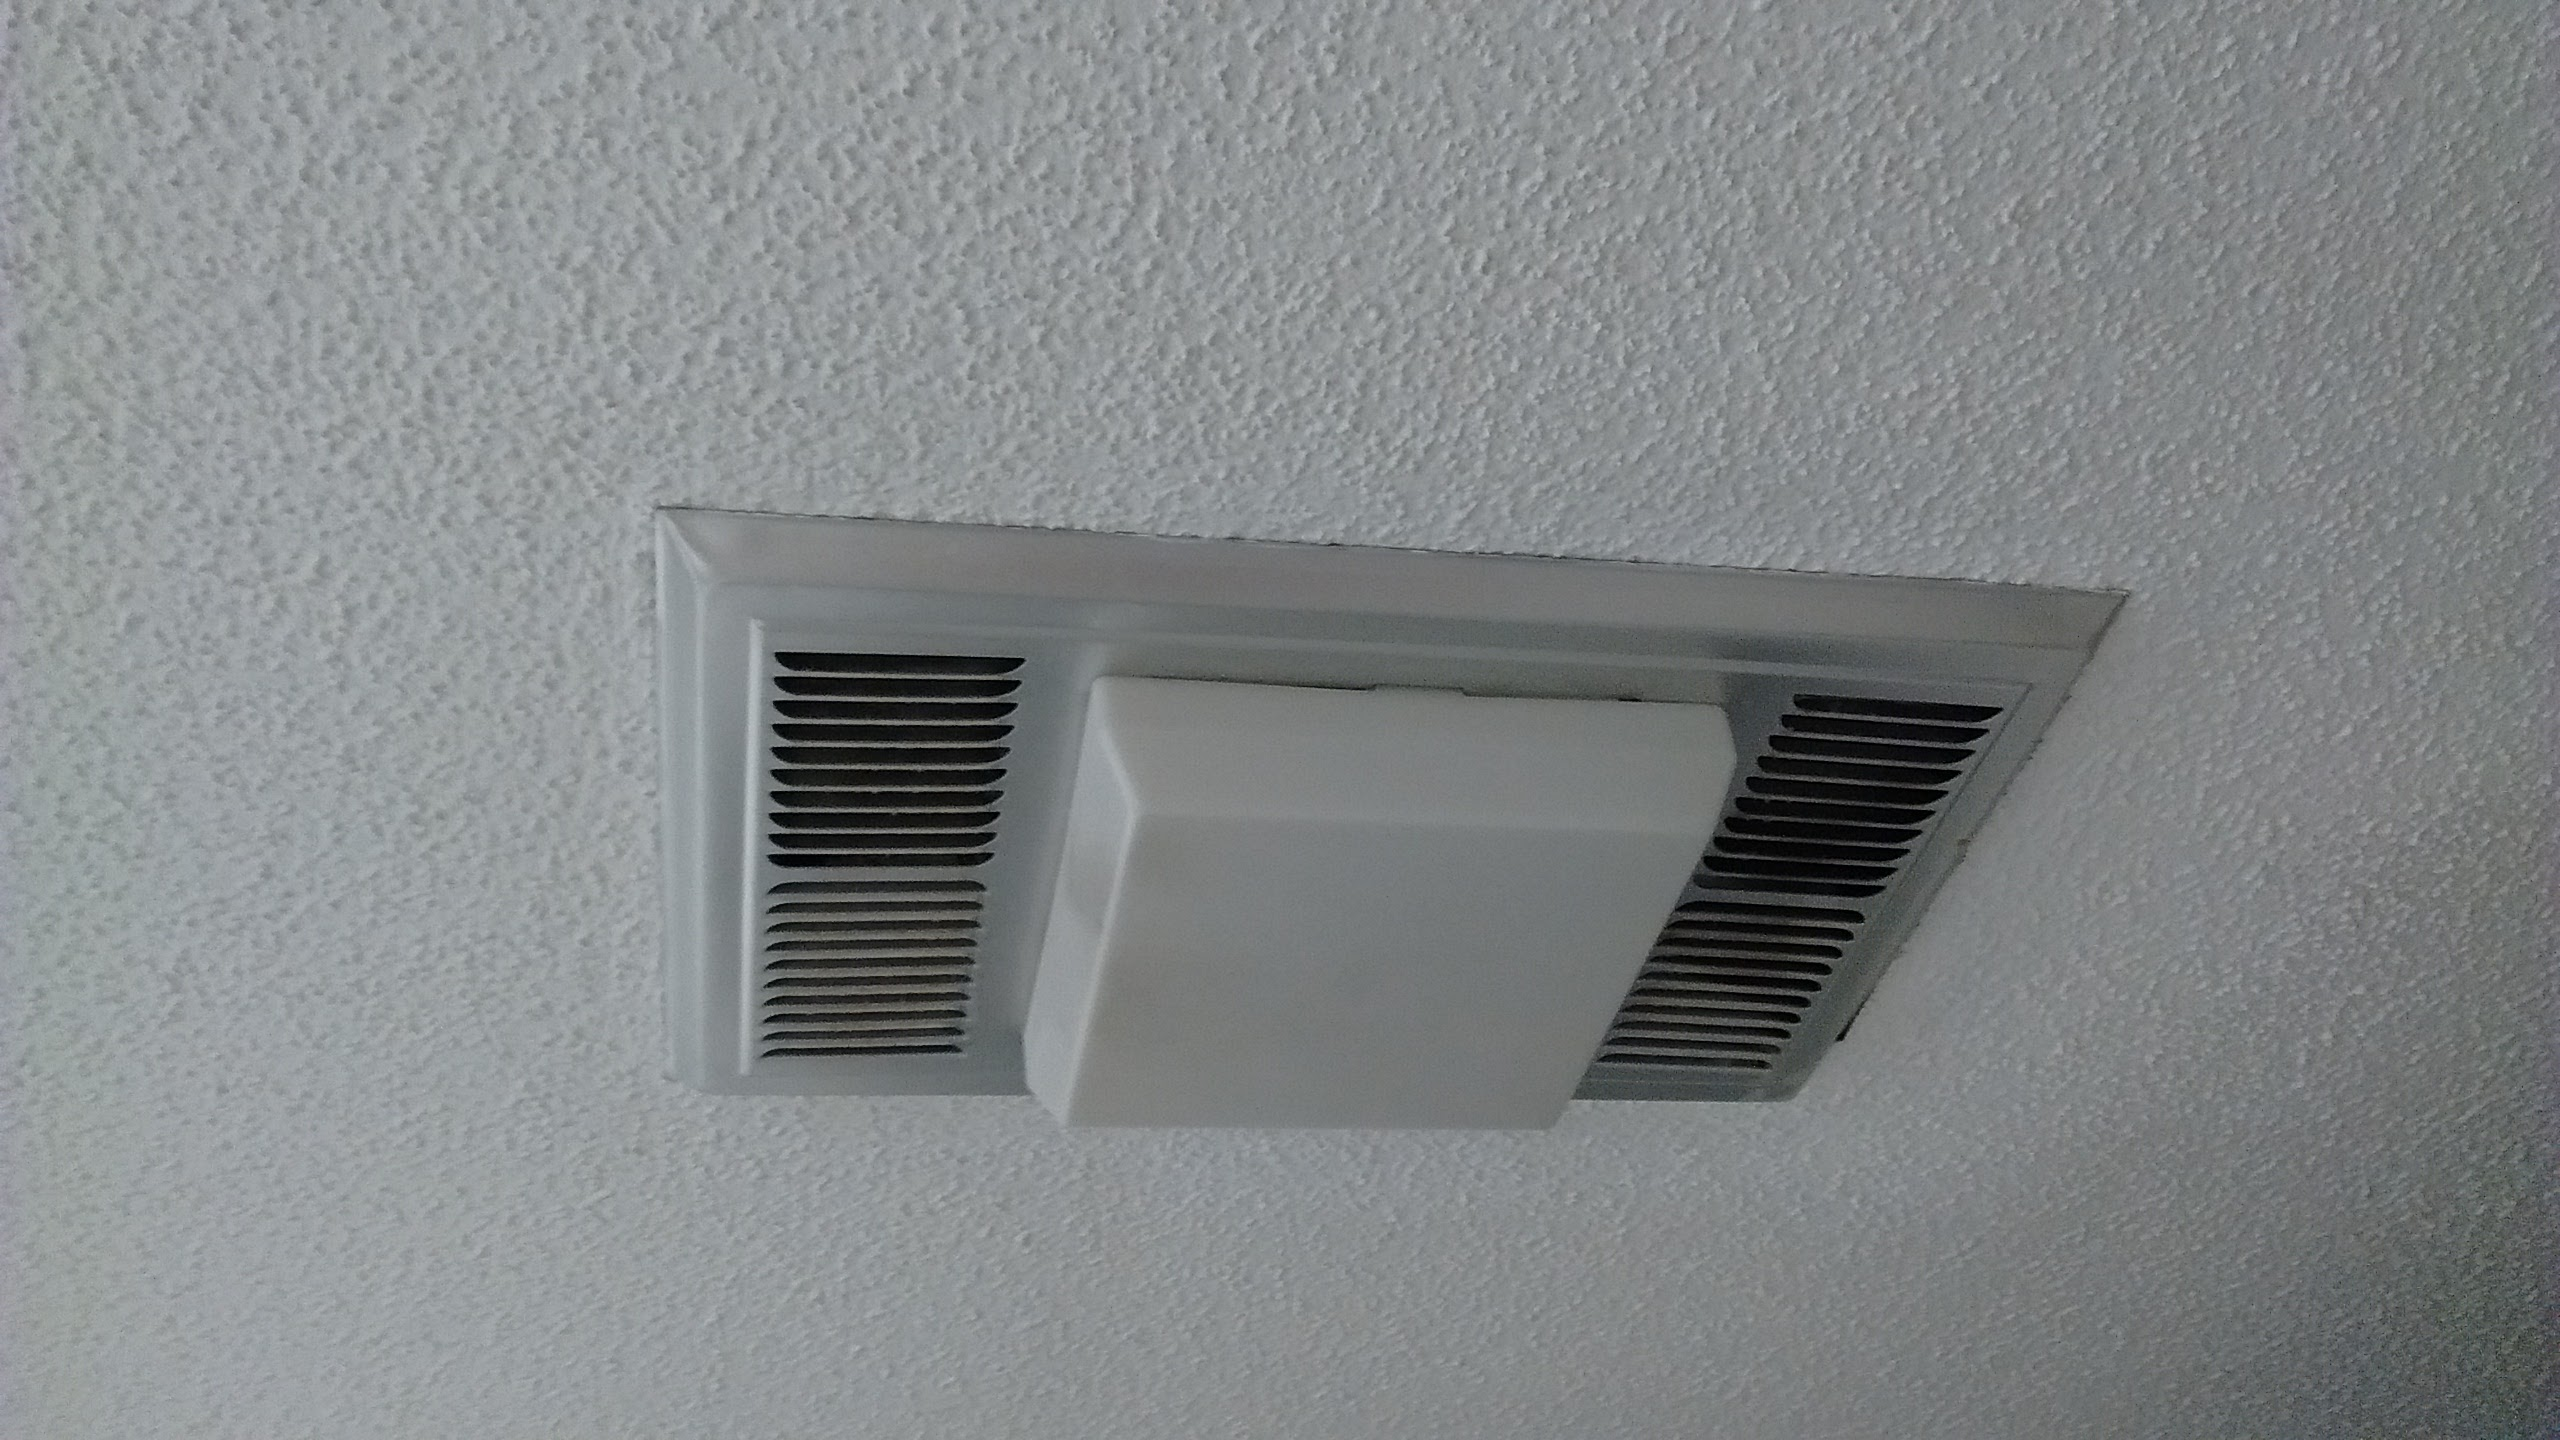 Identify This Bathroom Exhaust Fan / Heater /  Light Img_20160509_180952134